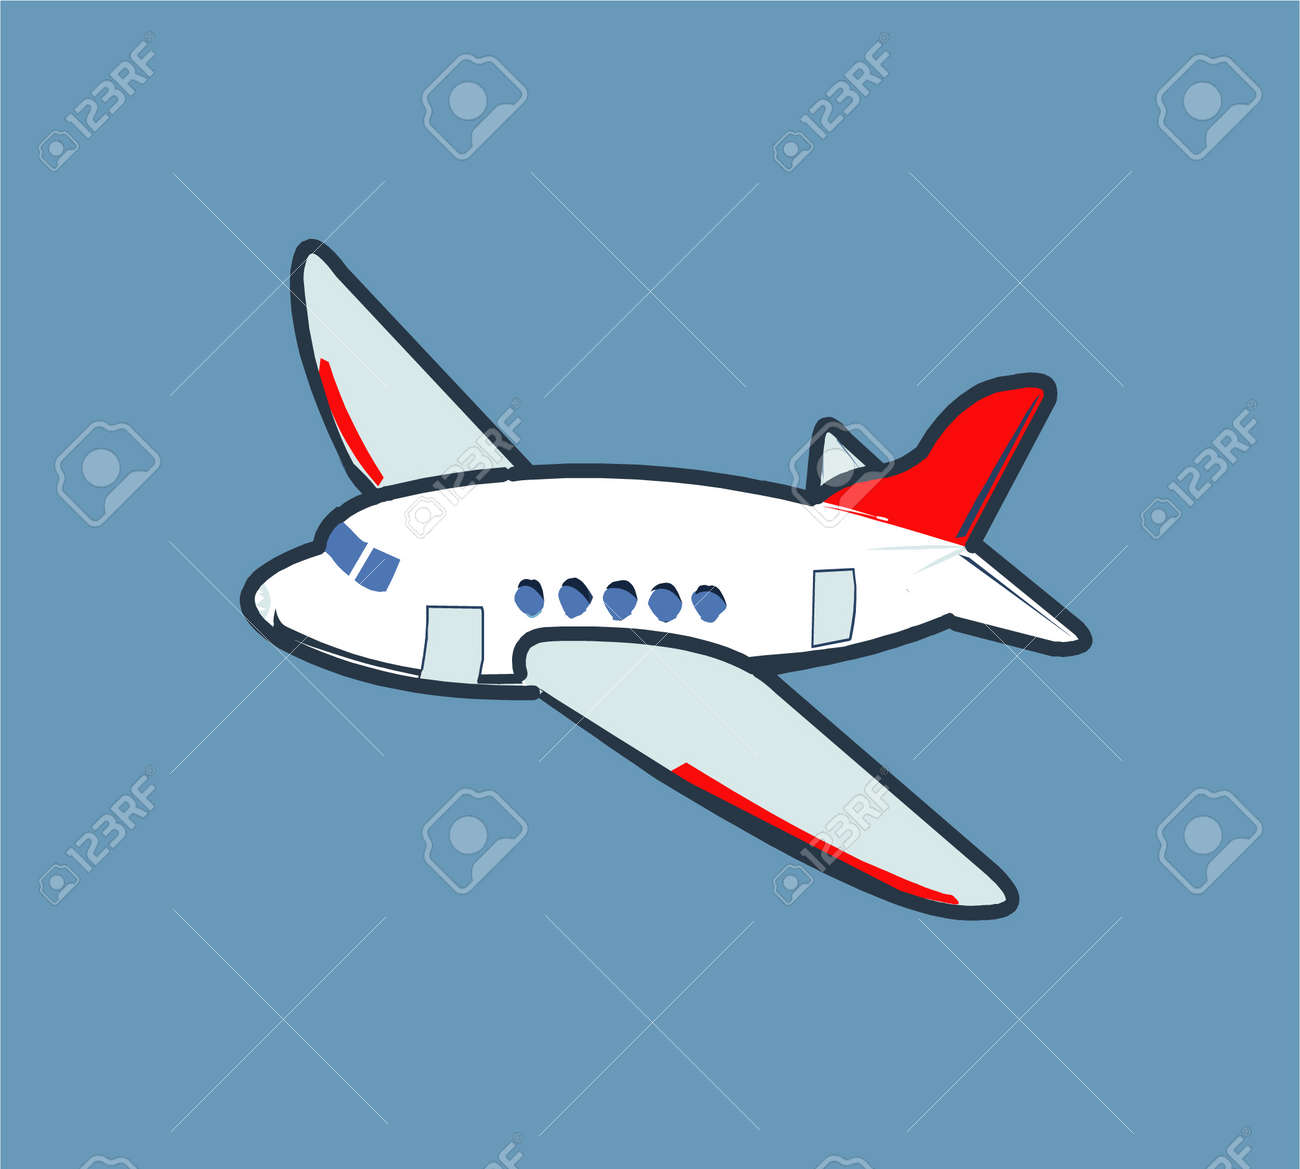 Cartoon airplane flying in the sky Stock Vector - 4031639